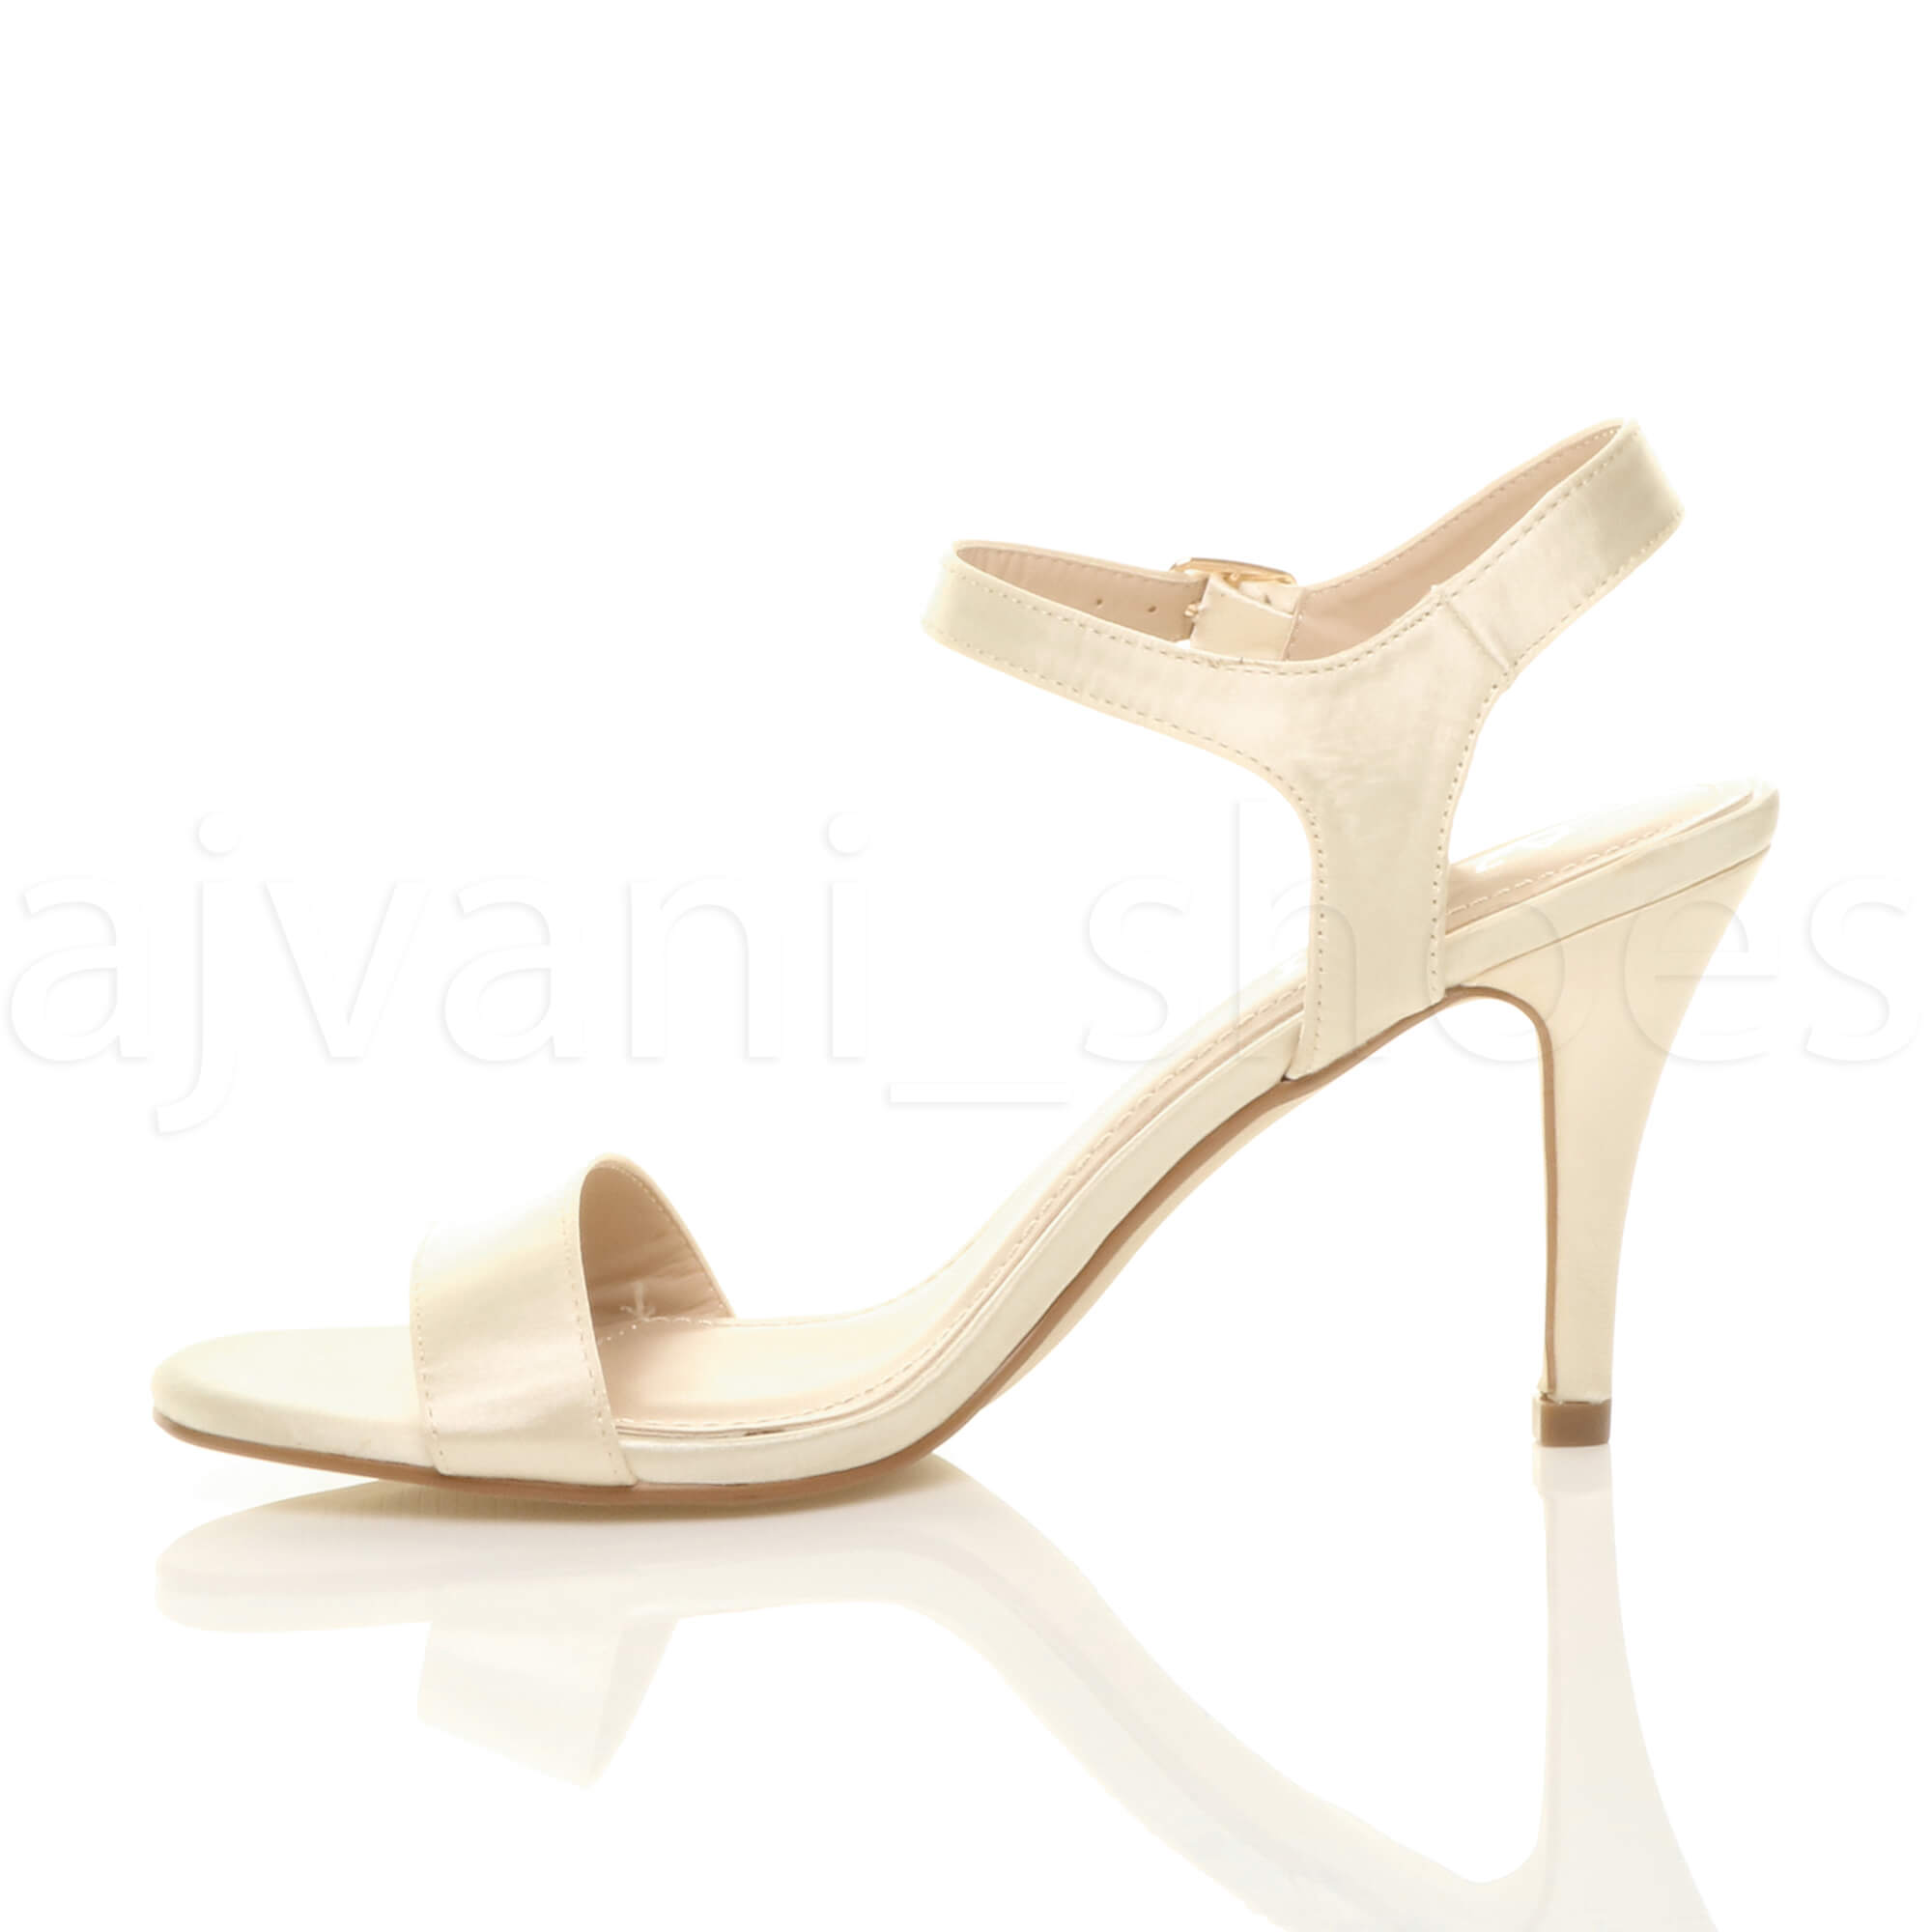 WOMENS-LADIES-HIGH-HEEL-BUCKLE-STRAPPY-BASIC-BARELY-THERE-SANDALS-SHOES-SIZE thumbnail 53